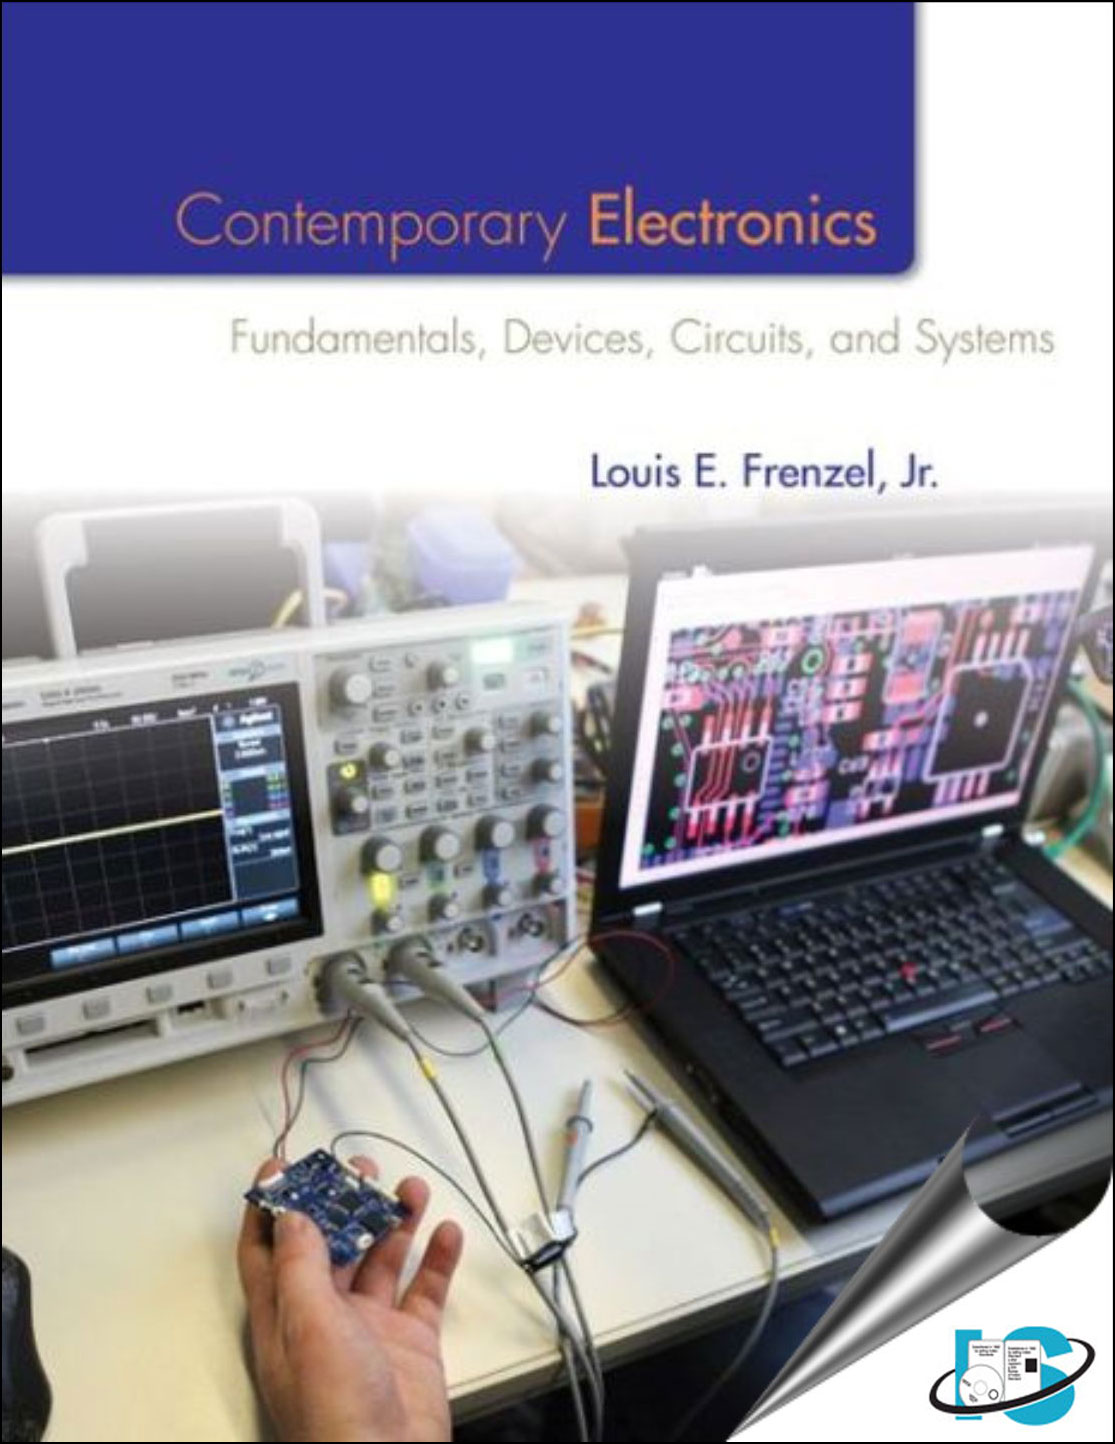 Electronics And Computer Systems Fundamentals Auto Electrical Radio Frequency Circuit Design Repost Avaxhome Contemporary Devices Circuits